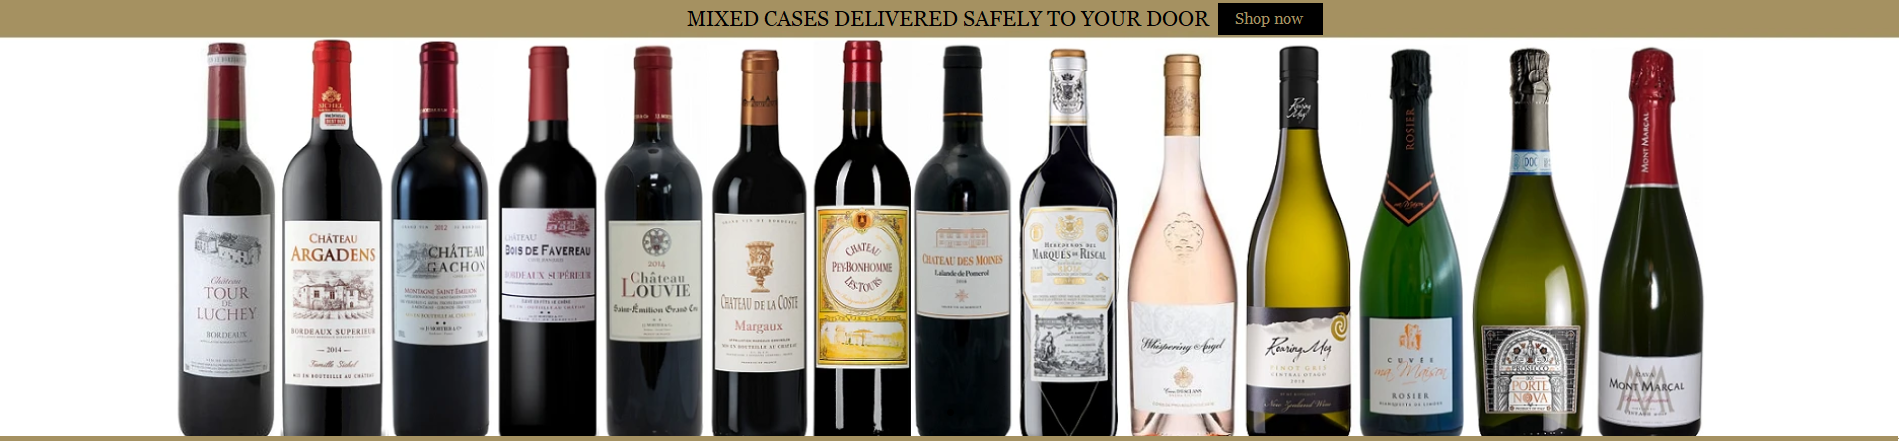 Fine Wine Mixed Cases